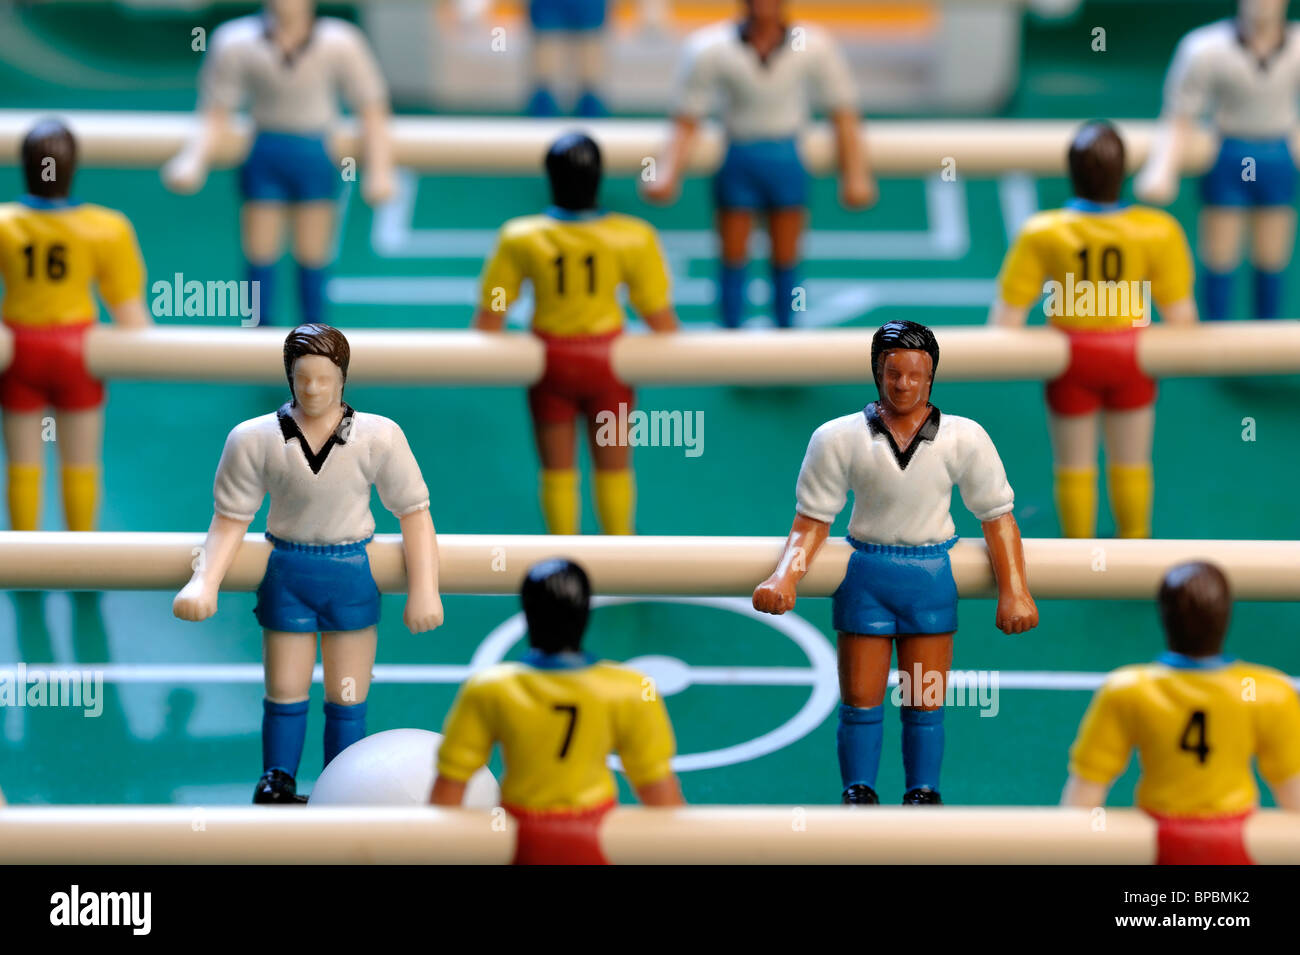 Table football players - Stock Image